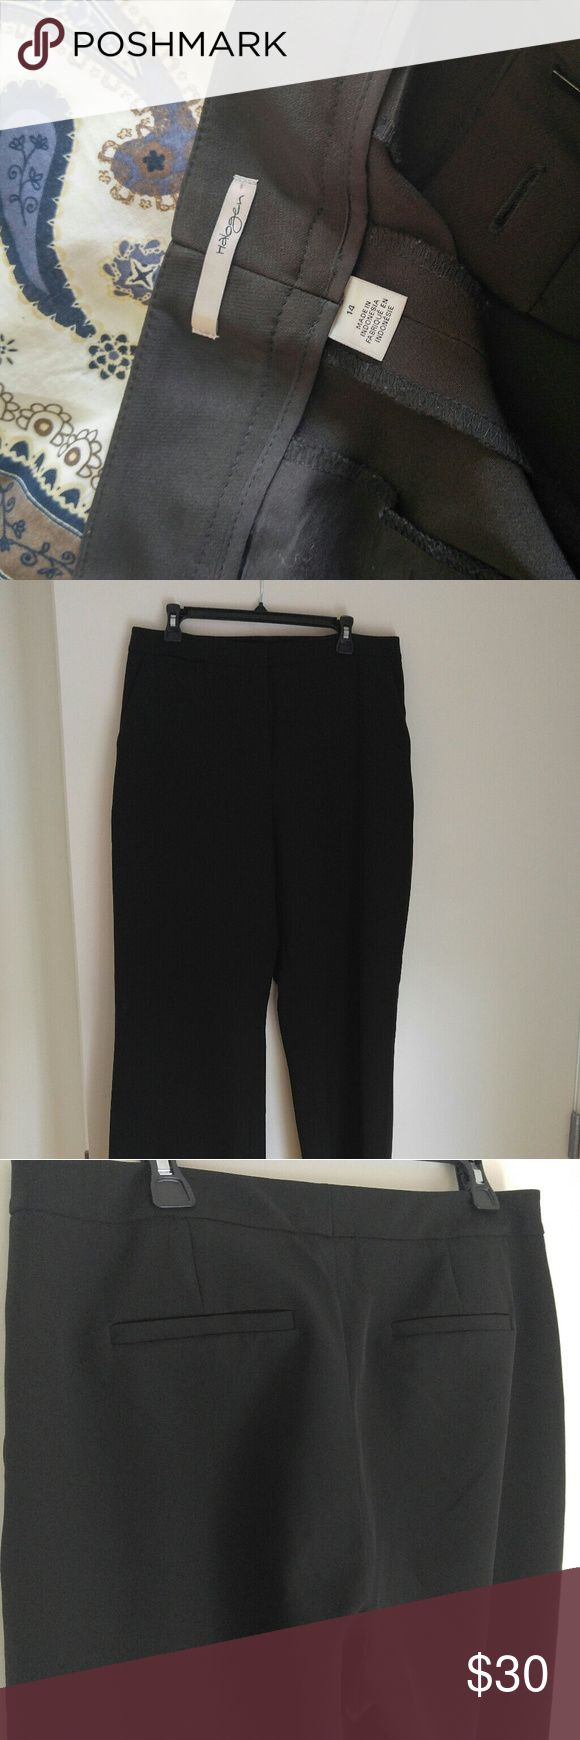 """Halogen wide leg trousers - TALL 34.5"""" inseam, perfect condition since I wore them once to an interview. No lining but has nice fabric that is totally non-iron.   All five pockets are real pockets (what? Working pockets for ladies? What madness is this?) but they're still sewn shut bc again, I barely wore them.   I did keto and lost weight and now they're too big! Get these gorgeous pants today! Halogen Pants Trousers"""